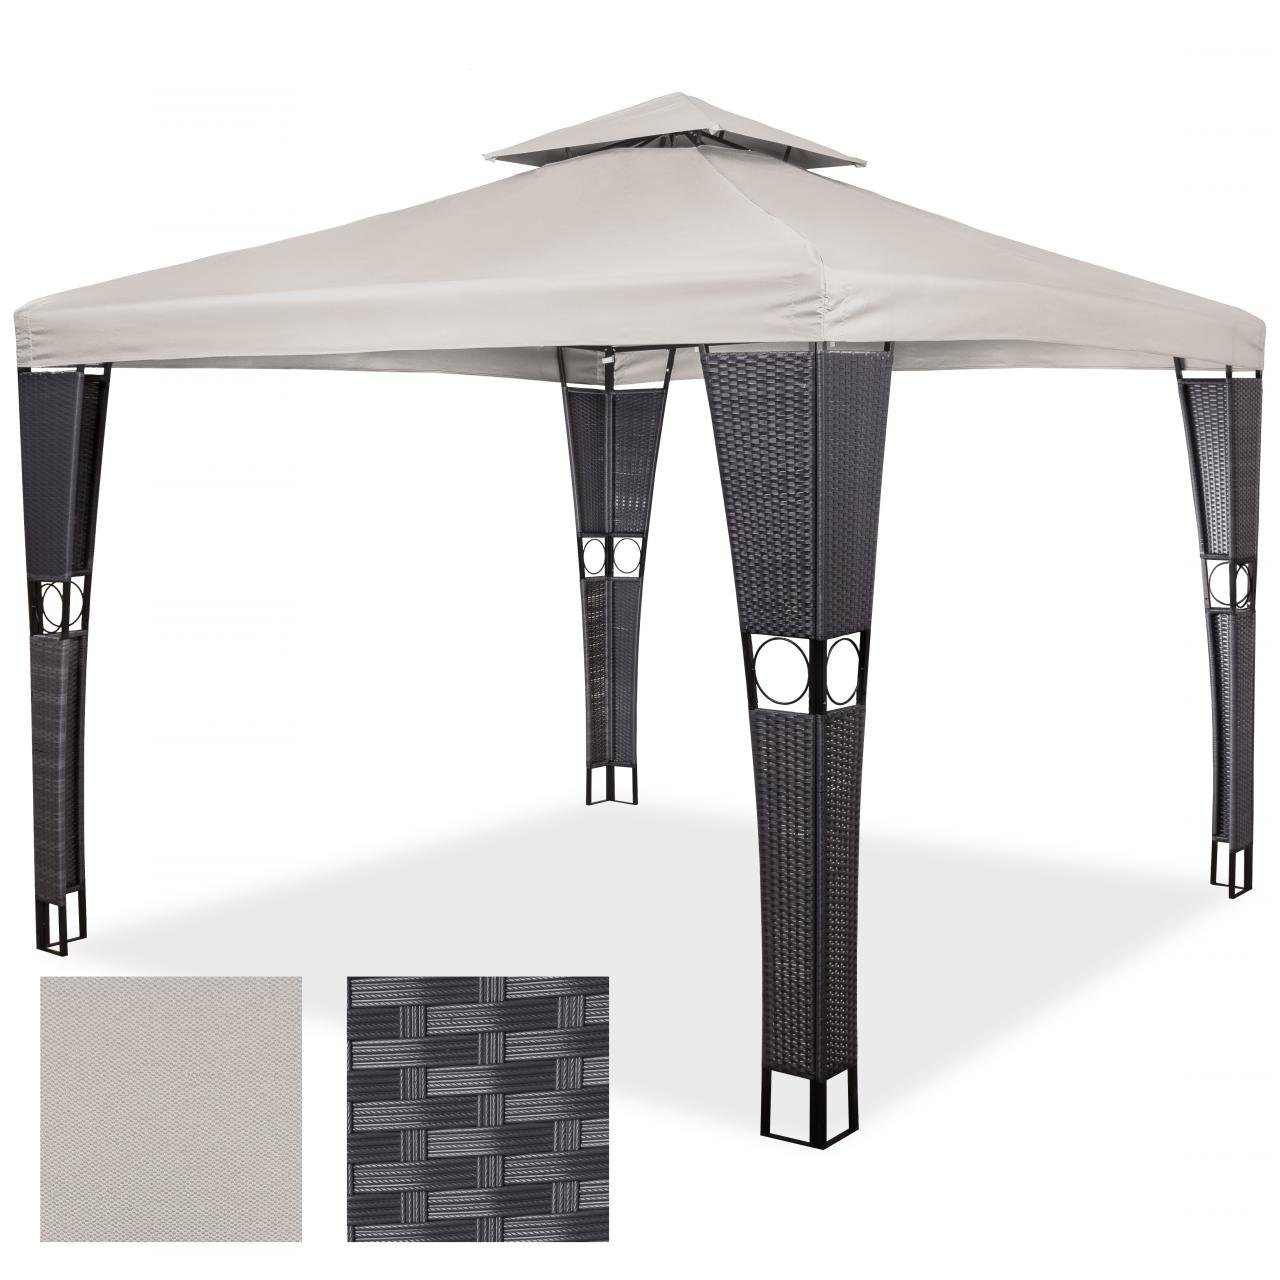 polyrattan pavillon gartenm bel sonnenschutz partyzelt gartenzelt 3 x 4 m sand g nstig online kaufen. Black Bedroom Furniture Sets. Home Design Ideas